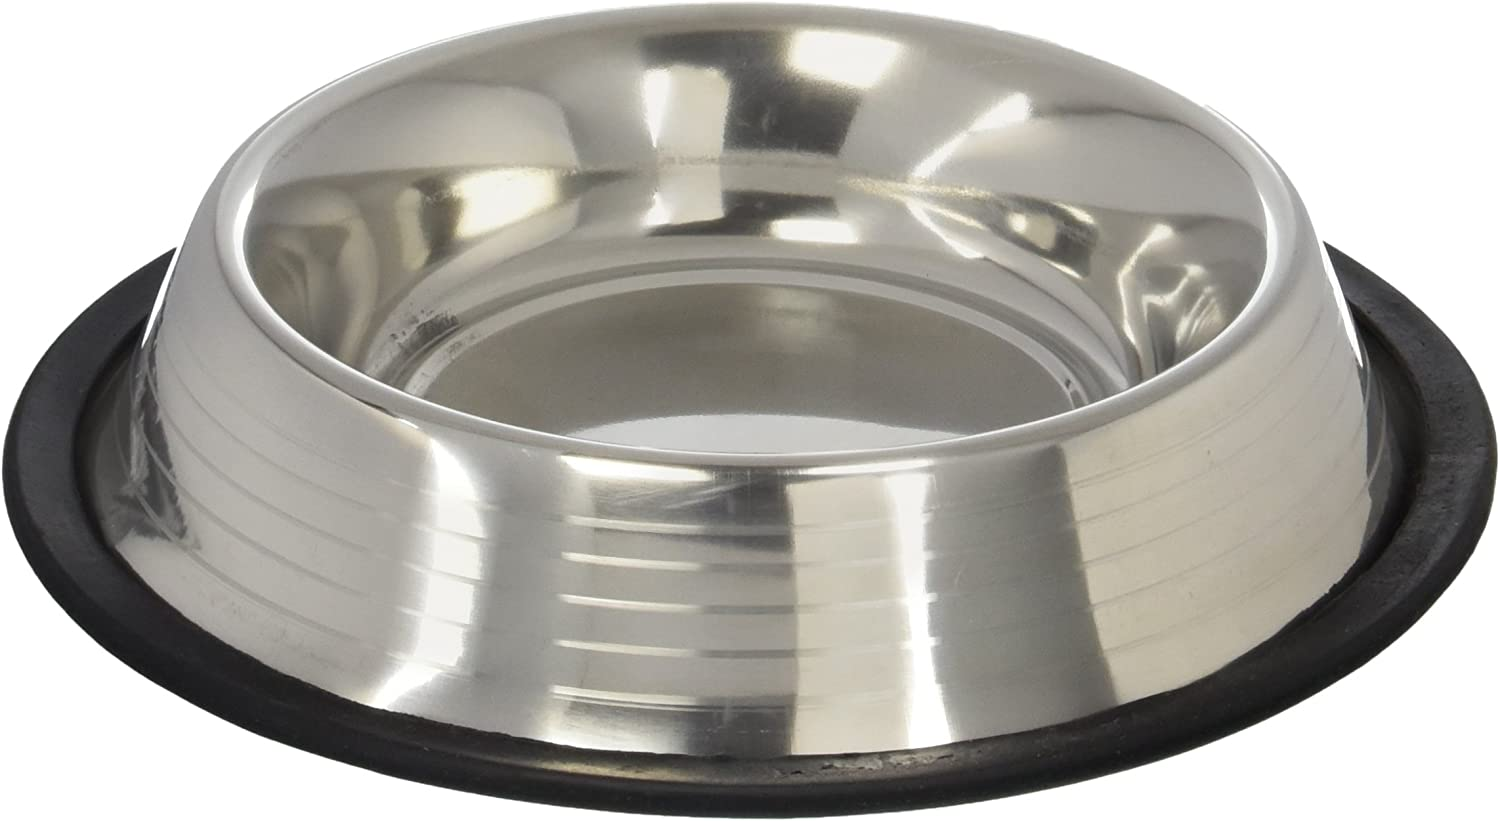 Maslow Dog Bowl with Ridges, Stainless Steel, Non-Skid, 2-Cup